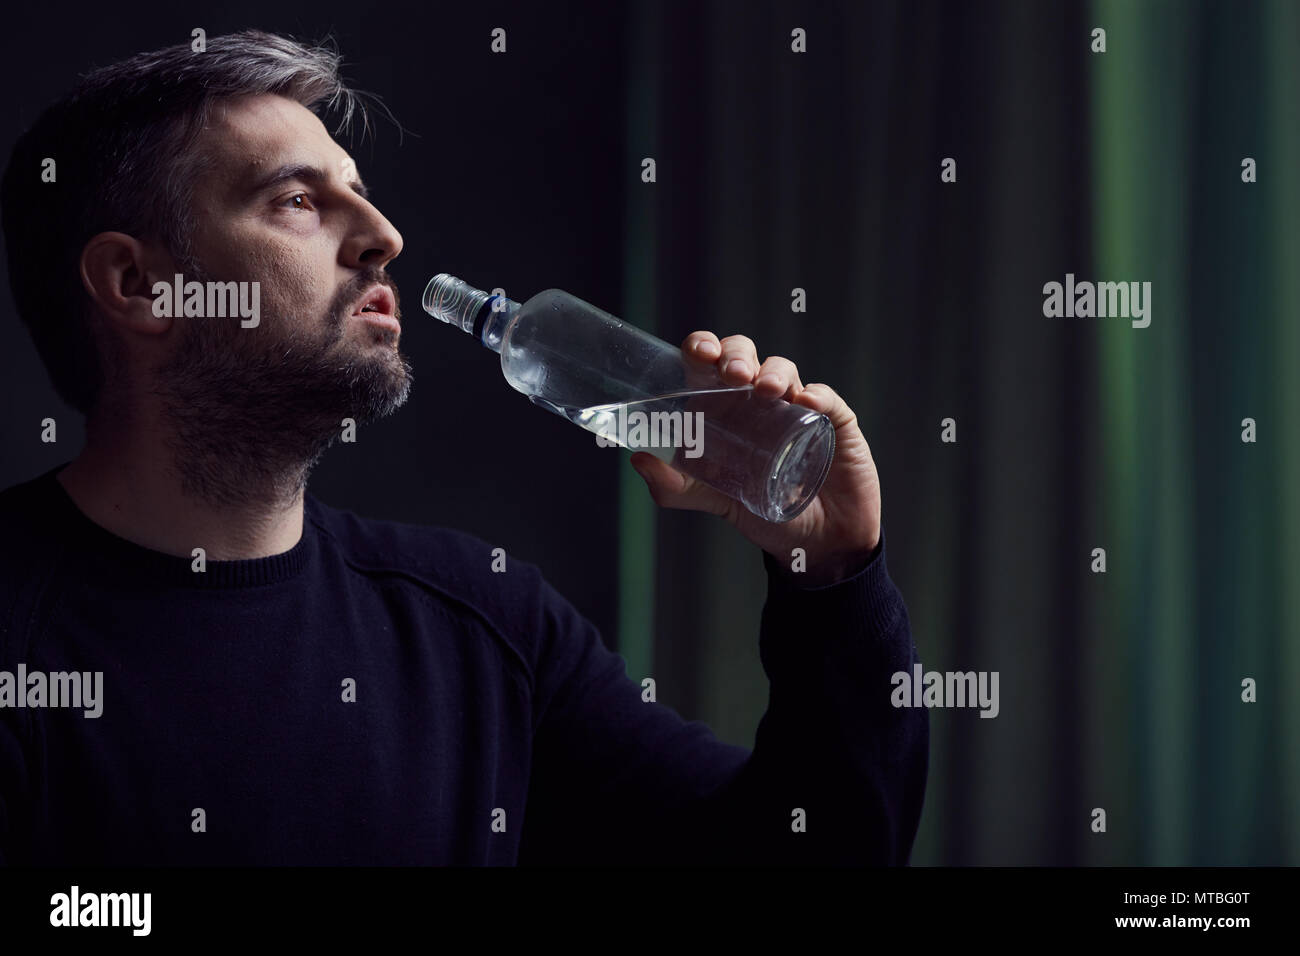 Broken and lonely alcoholic man with depression - Stock Image